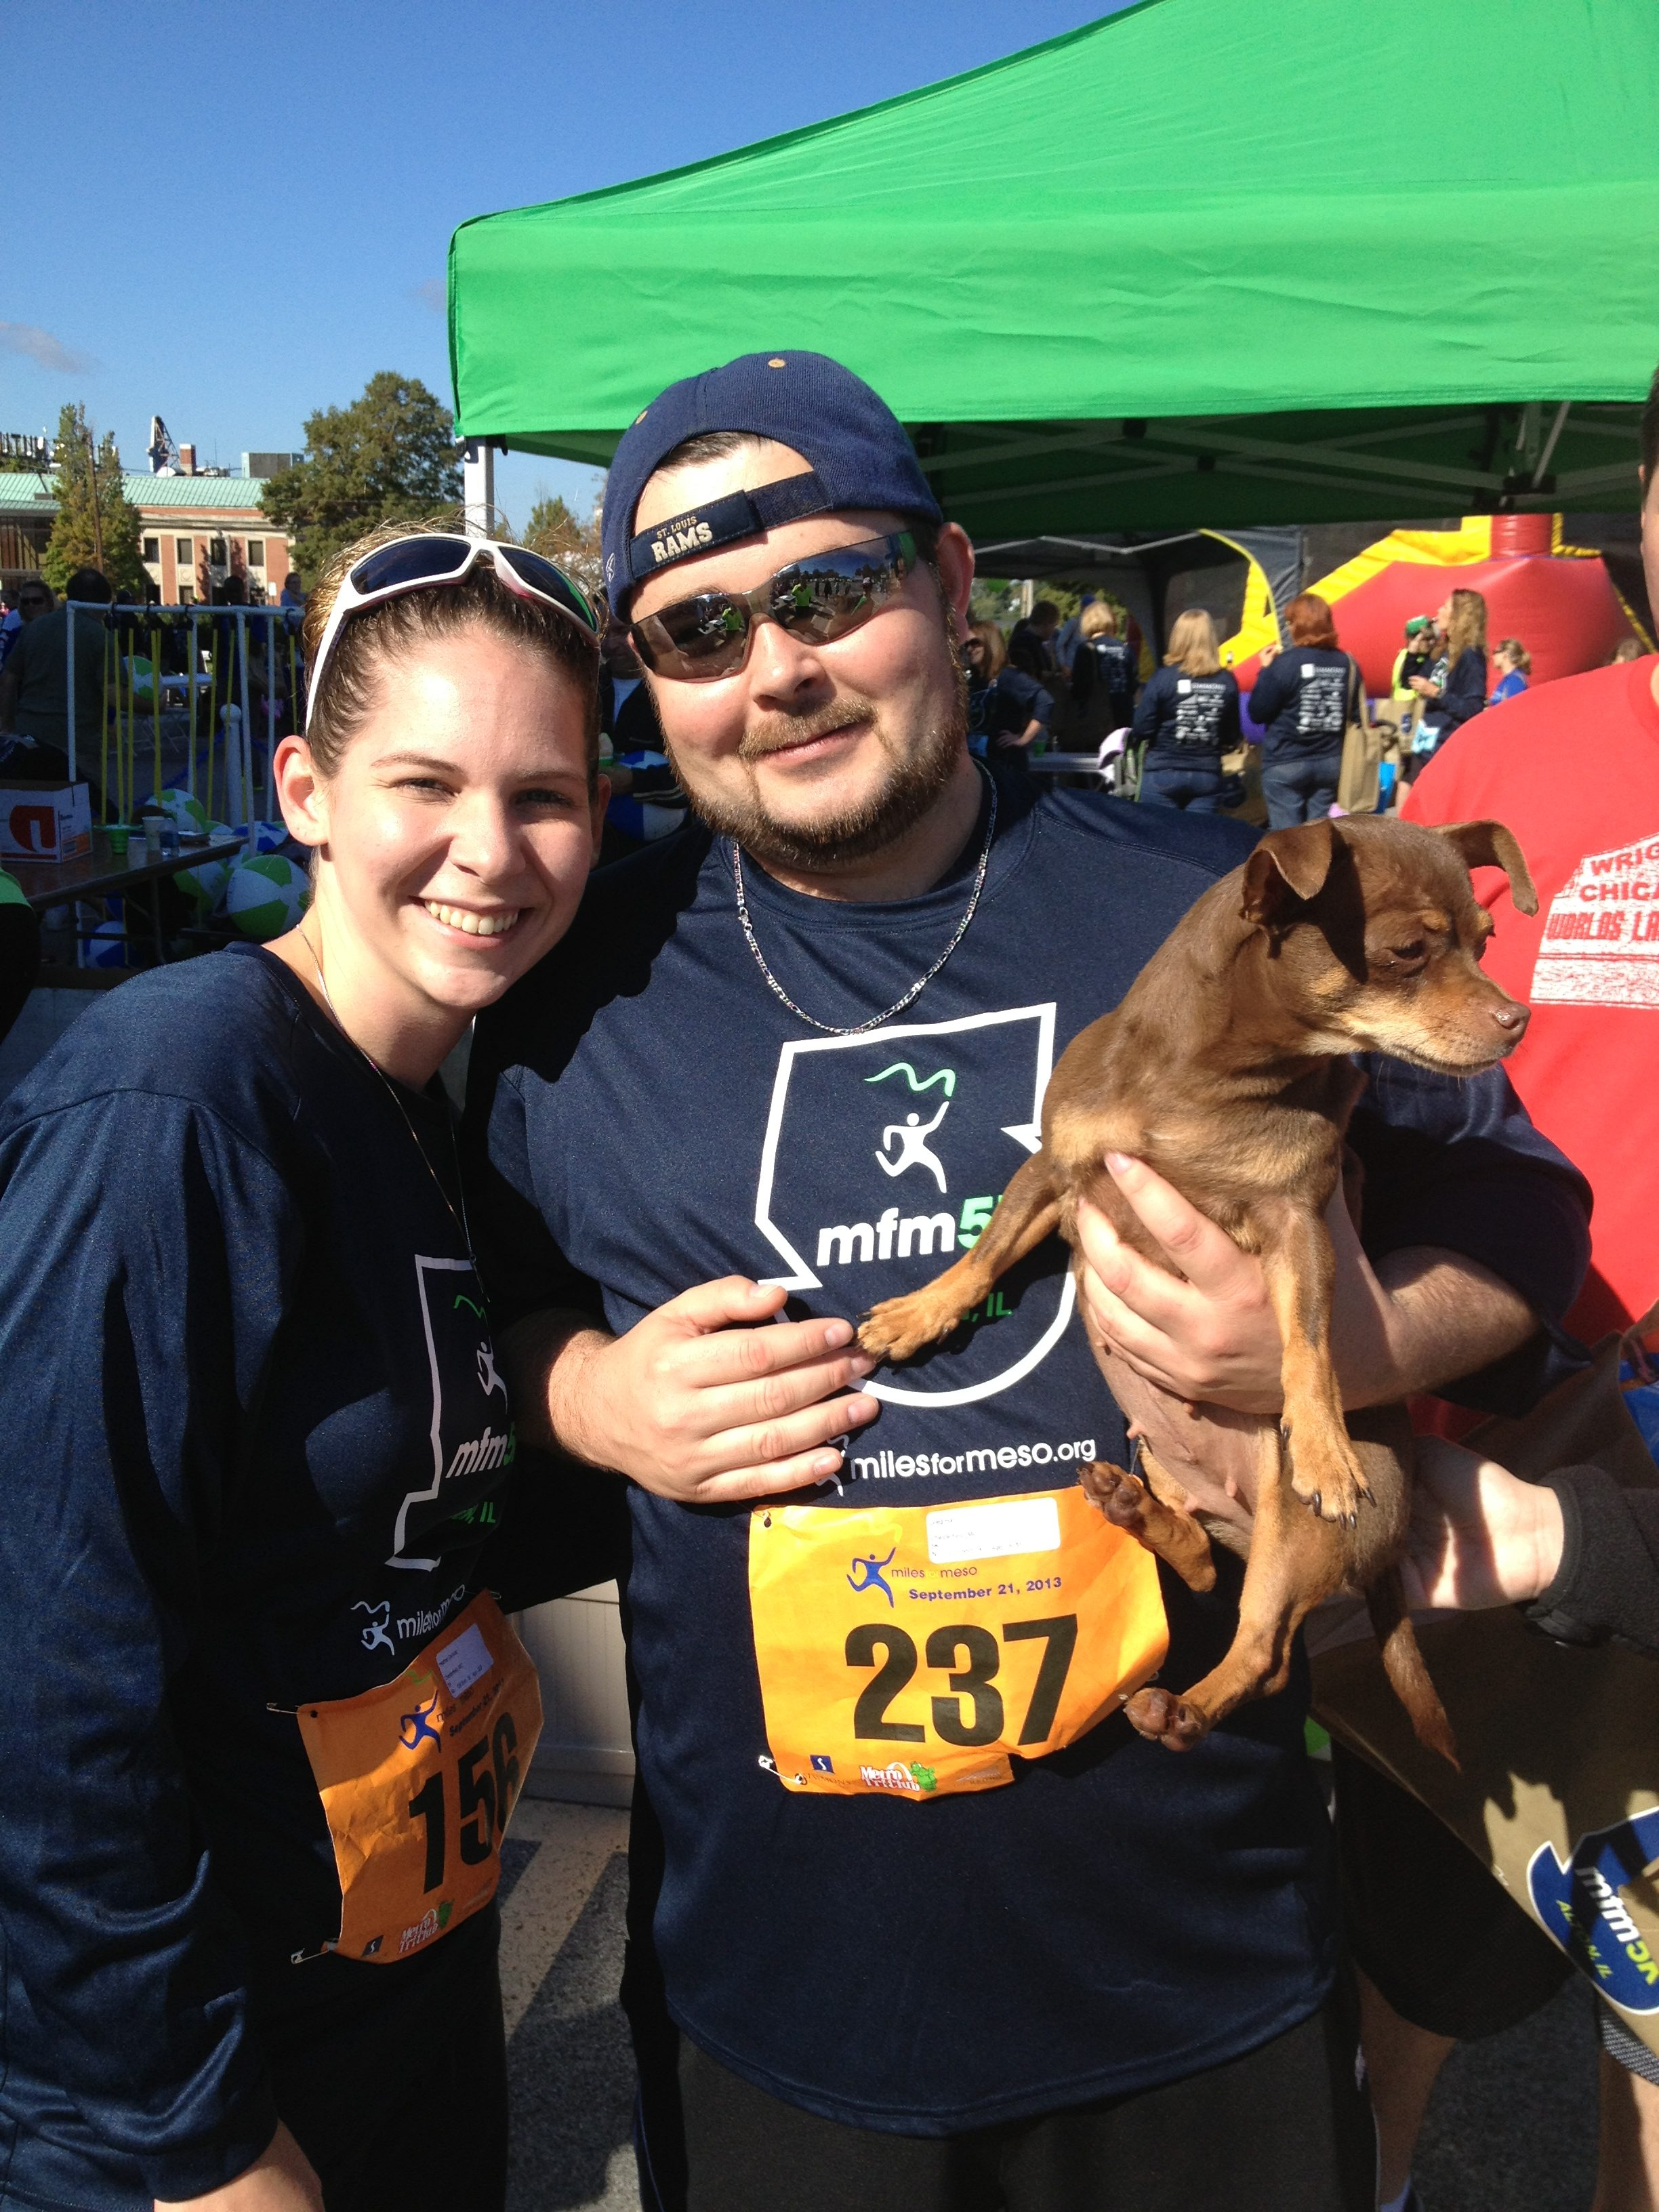 Miles for Mesothelioma Run and Walk